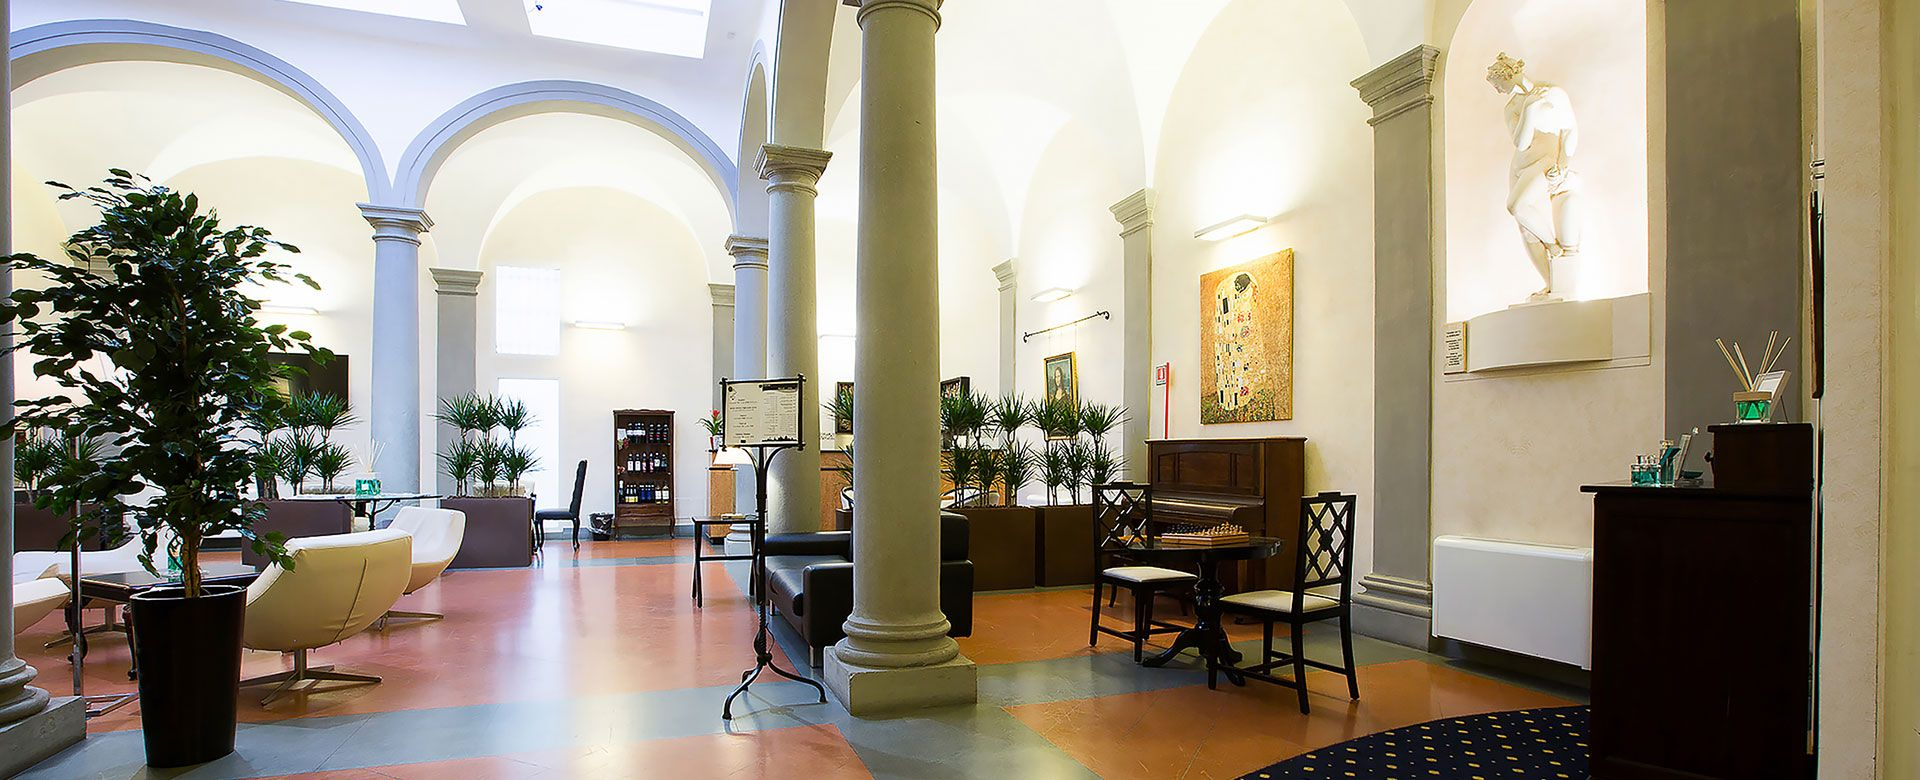 15 61 Hotel Centrale Firenze Hall